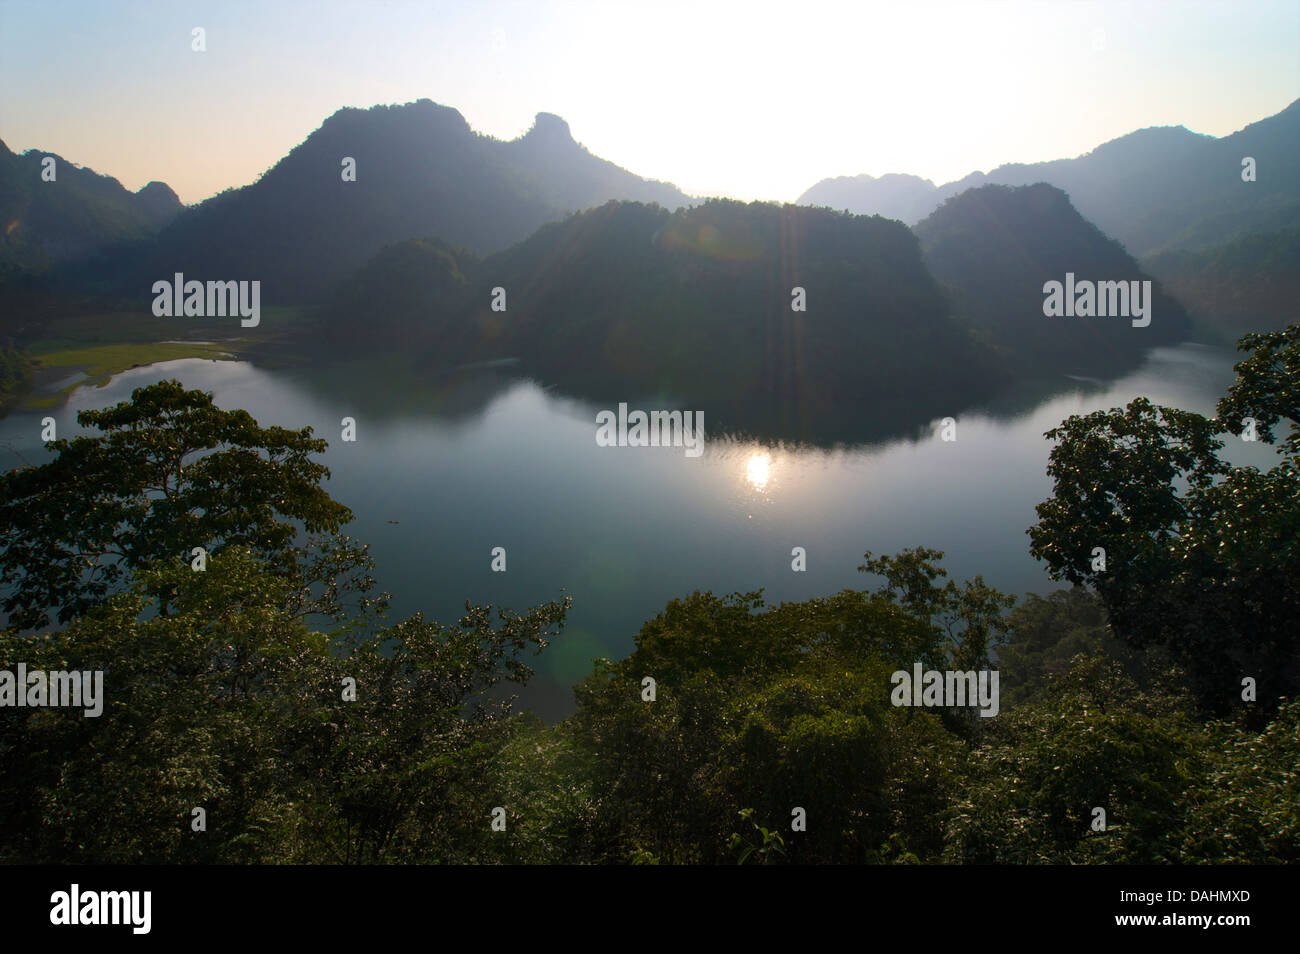 Ba Be lake is the largest natural lake in Vietnam. Bac Kan district, Bac Kan Province. Northeast Vietnam - Stock Image